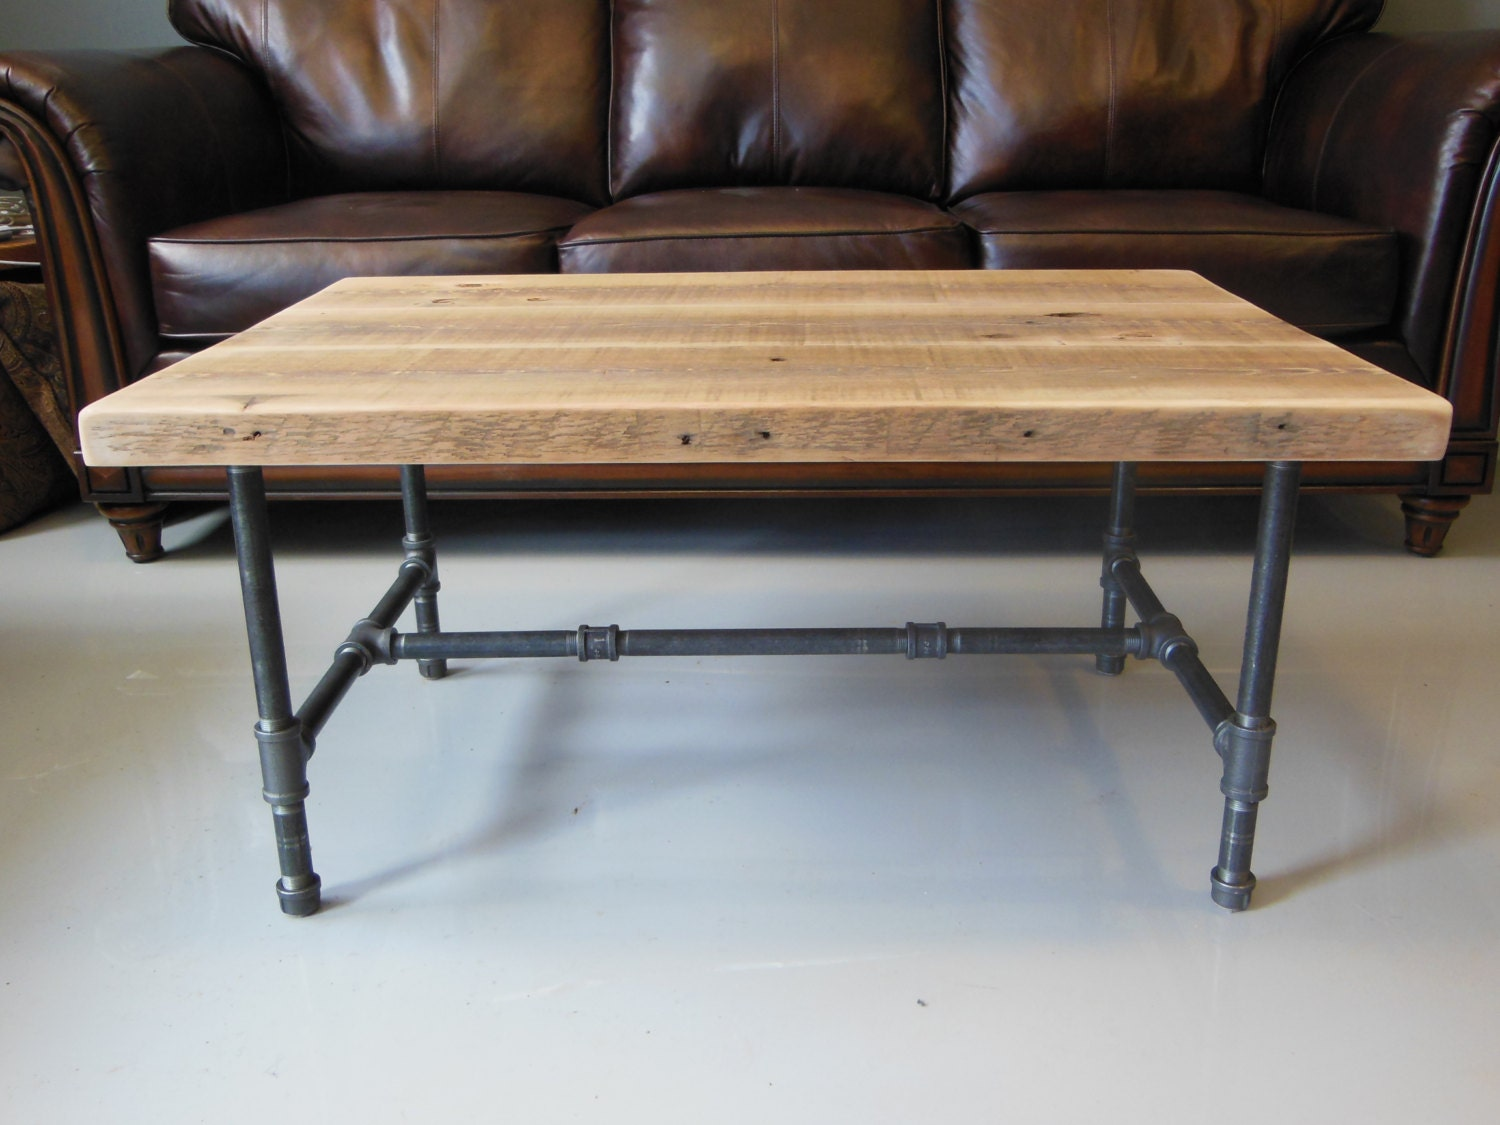 Reclaimed wood coffee table with industrial pipe legs by dendroco Recycled wood coffee table